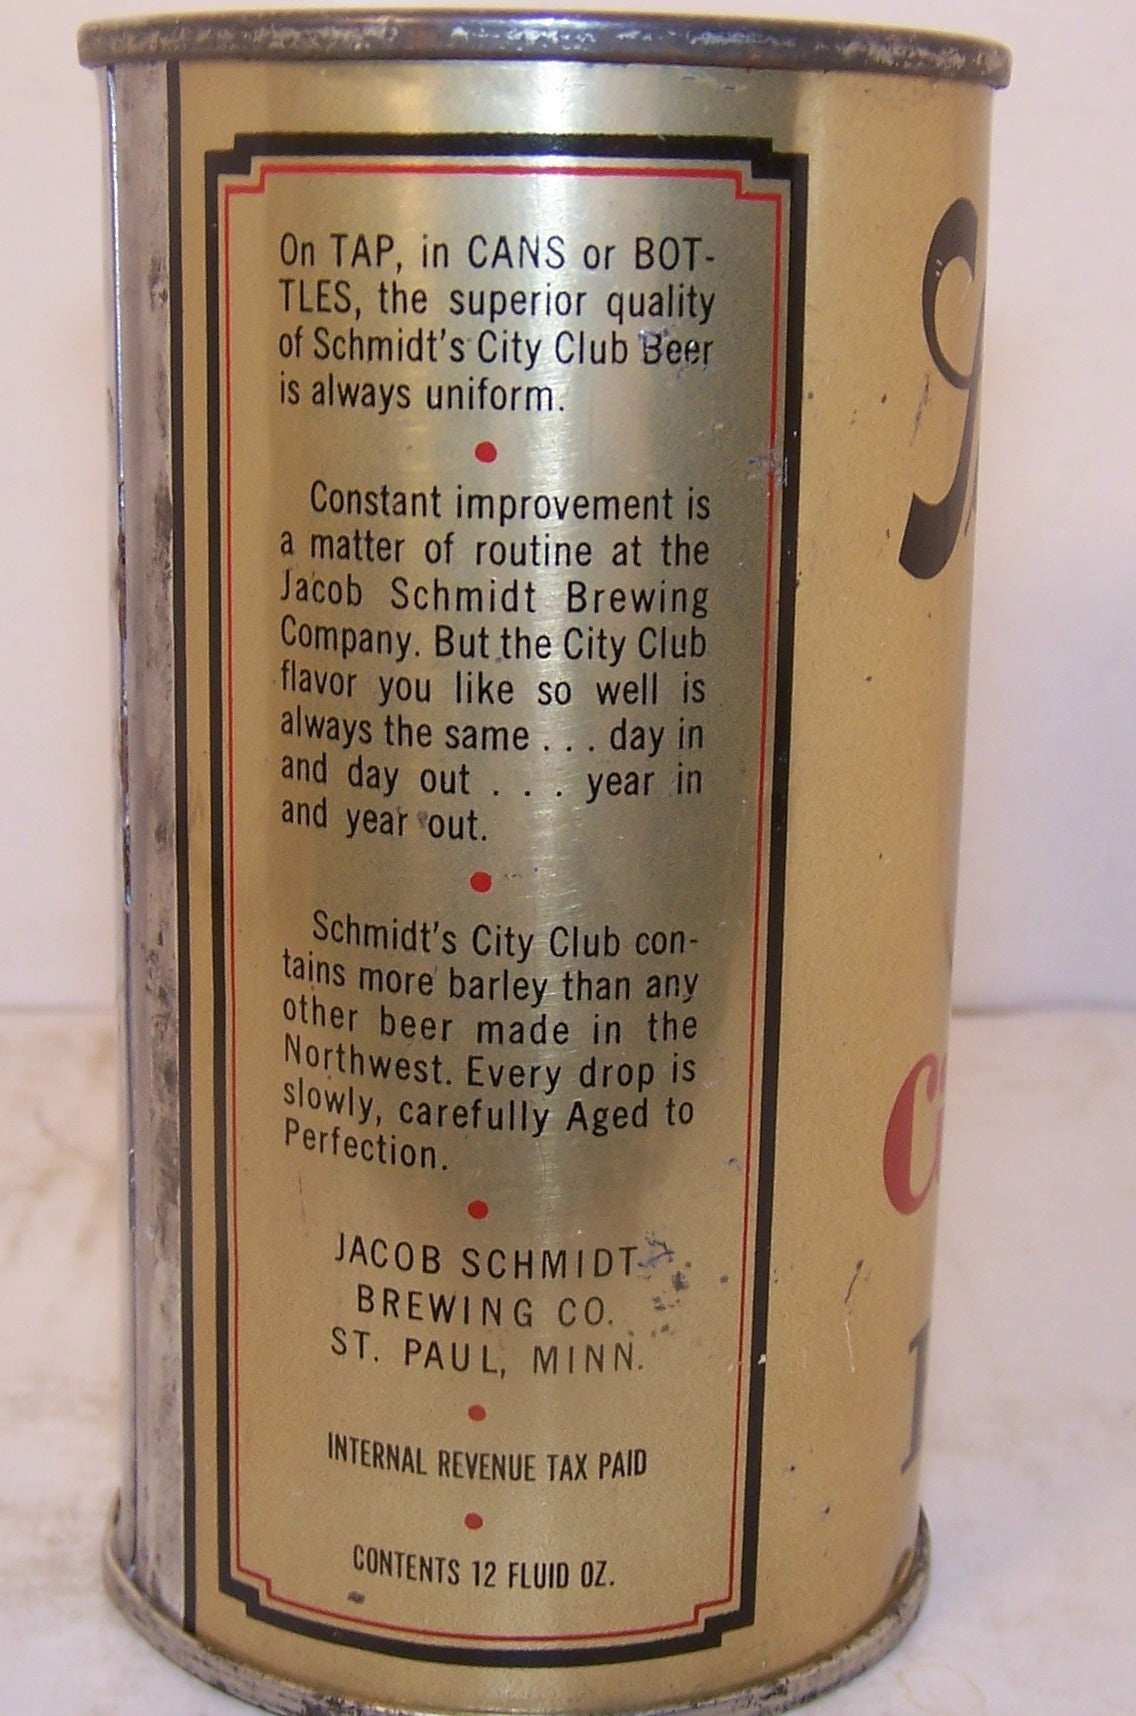 Schmidt's City Club Beer, Lilek Page # 744, Grade 1   Sold on 03/08/18